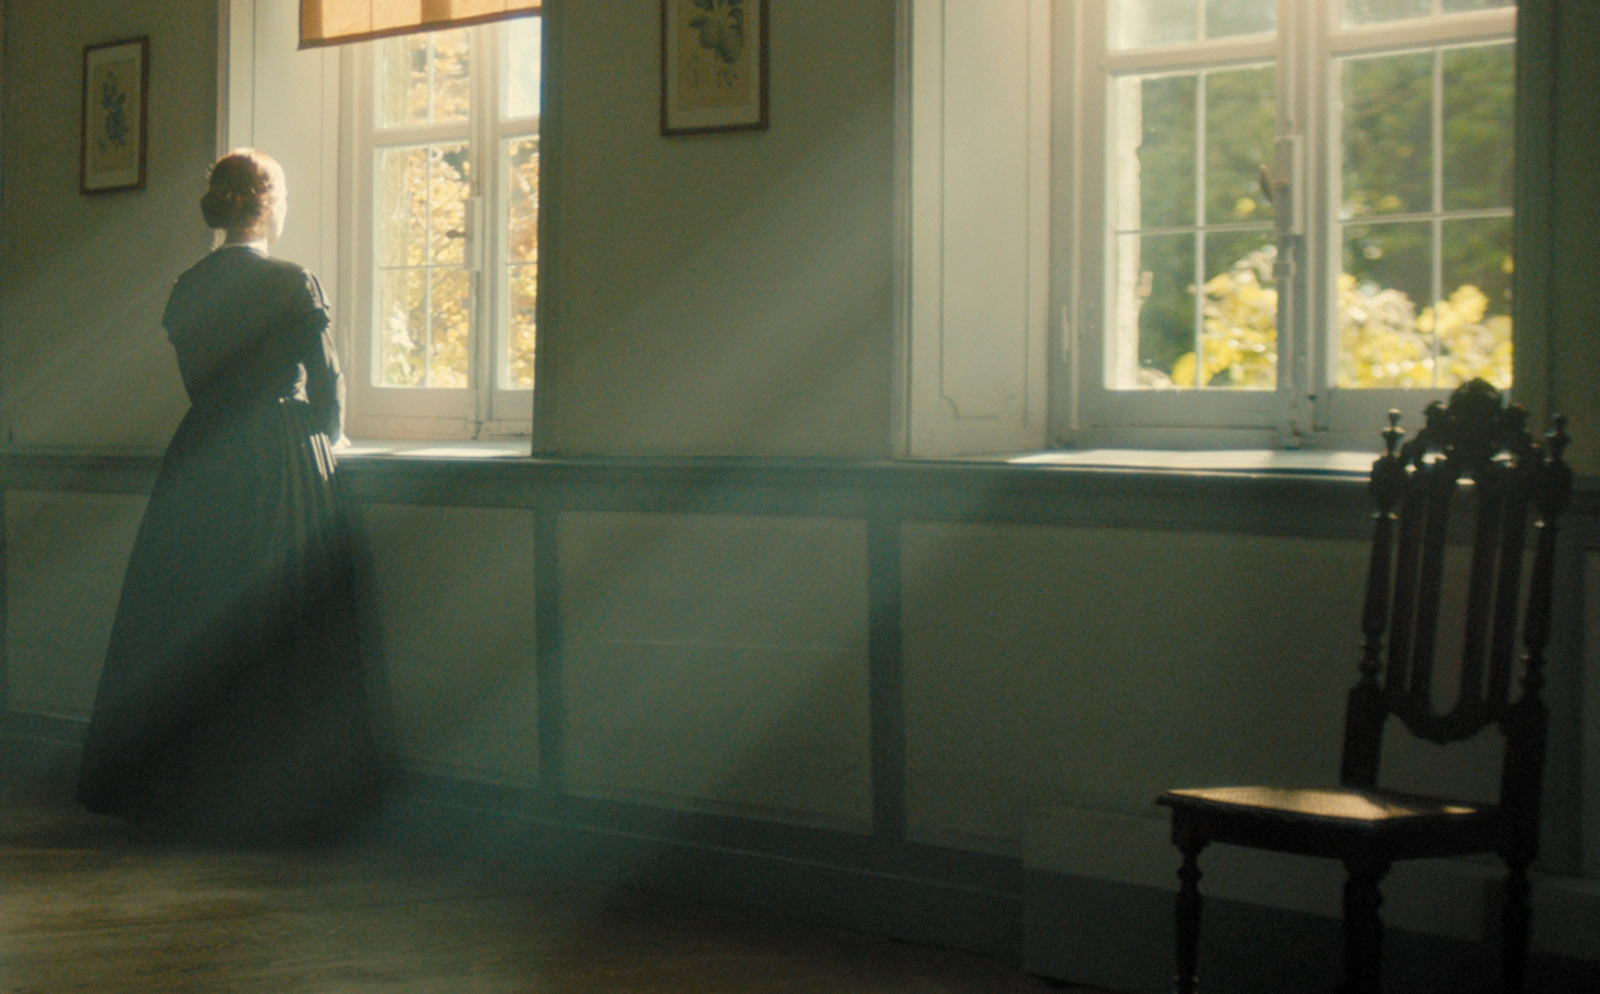 Cynthia Nixon as Emily Dickinson in Terence Davies's film A Quiet Passion